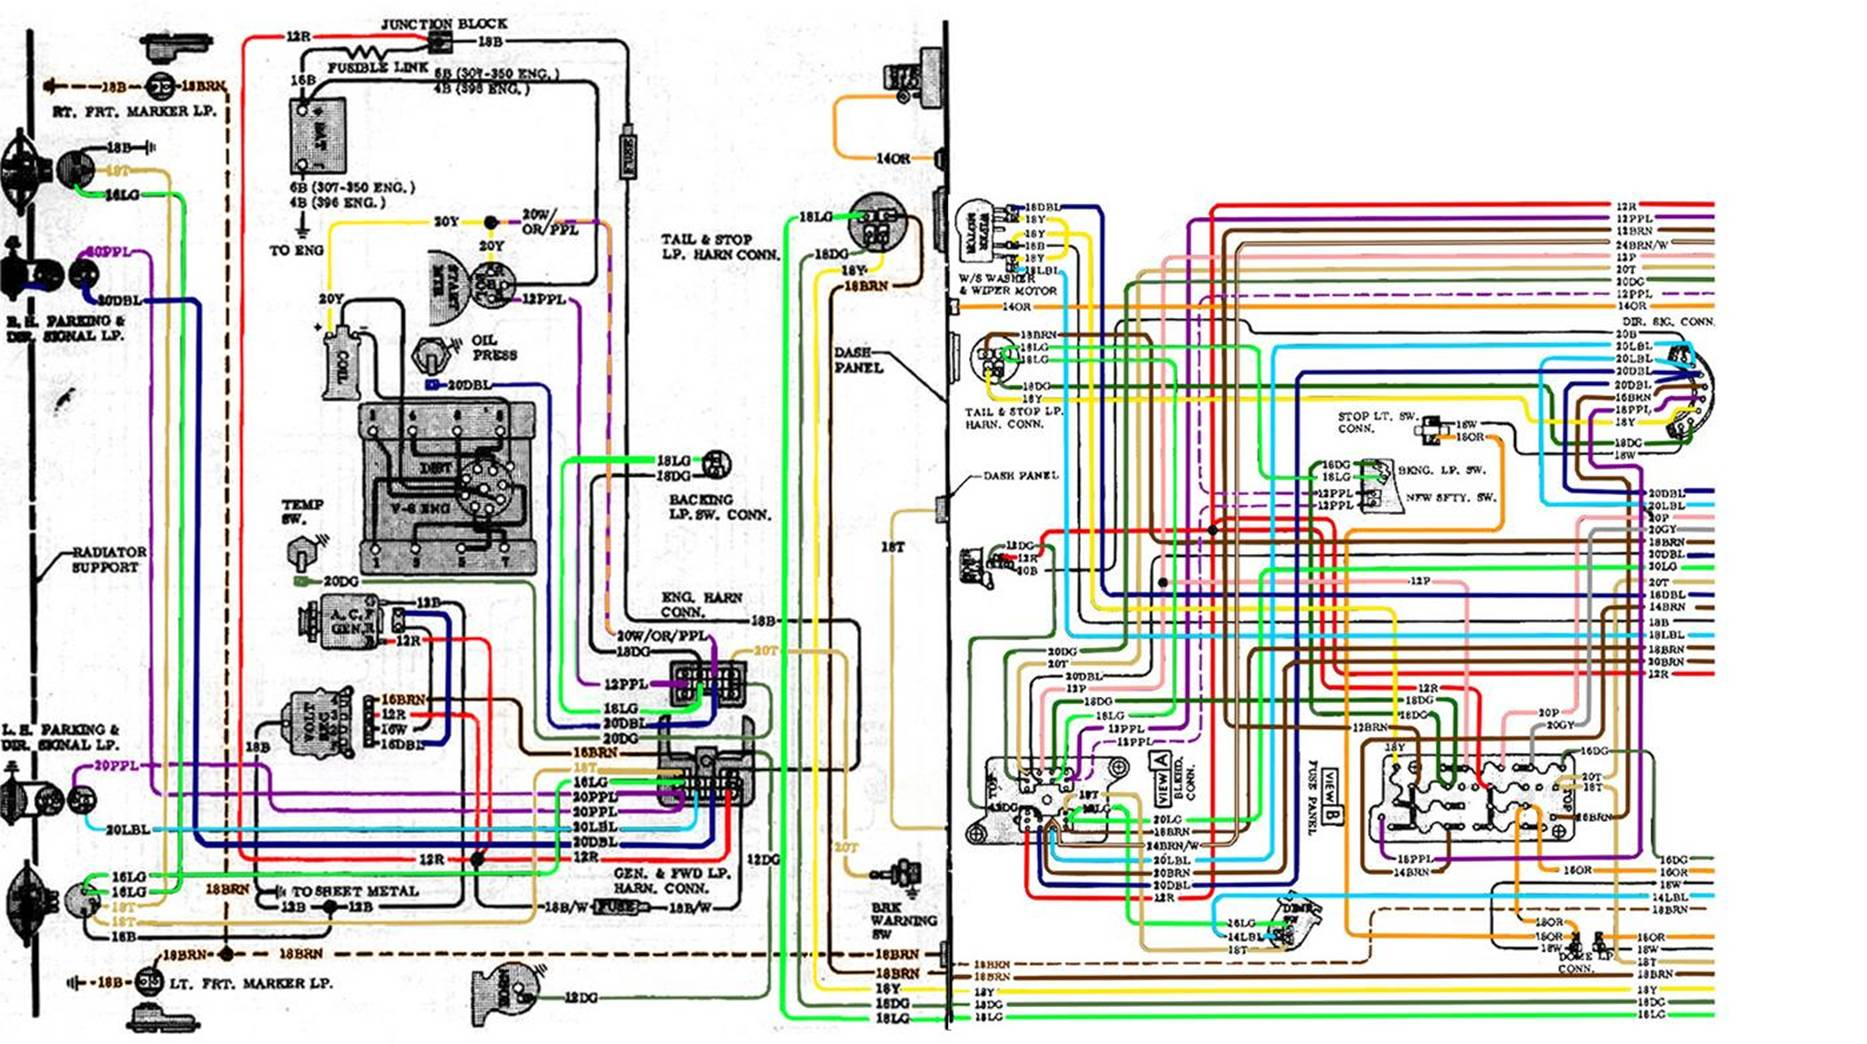 1970 Chevelle Wiring Harness Diagram Not Lossing Simple Car Dashboard Rh 2 Mara Cujas De Engine